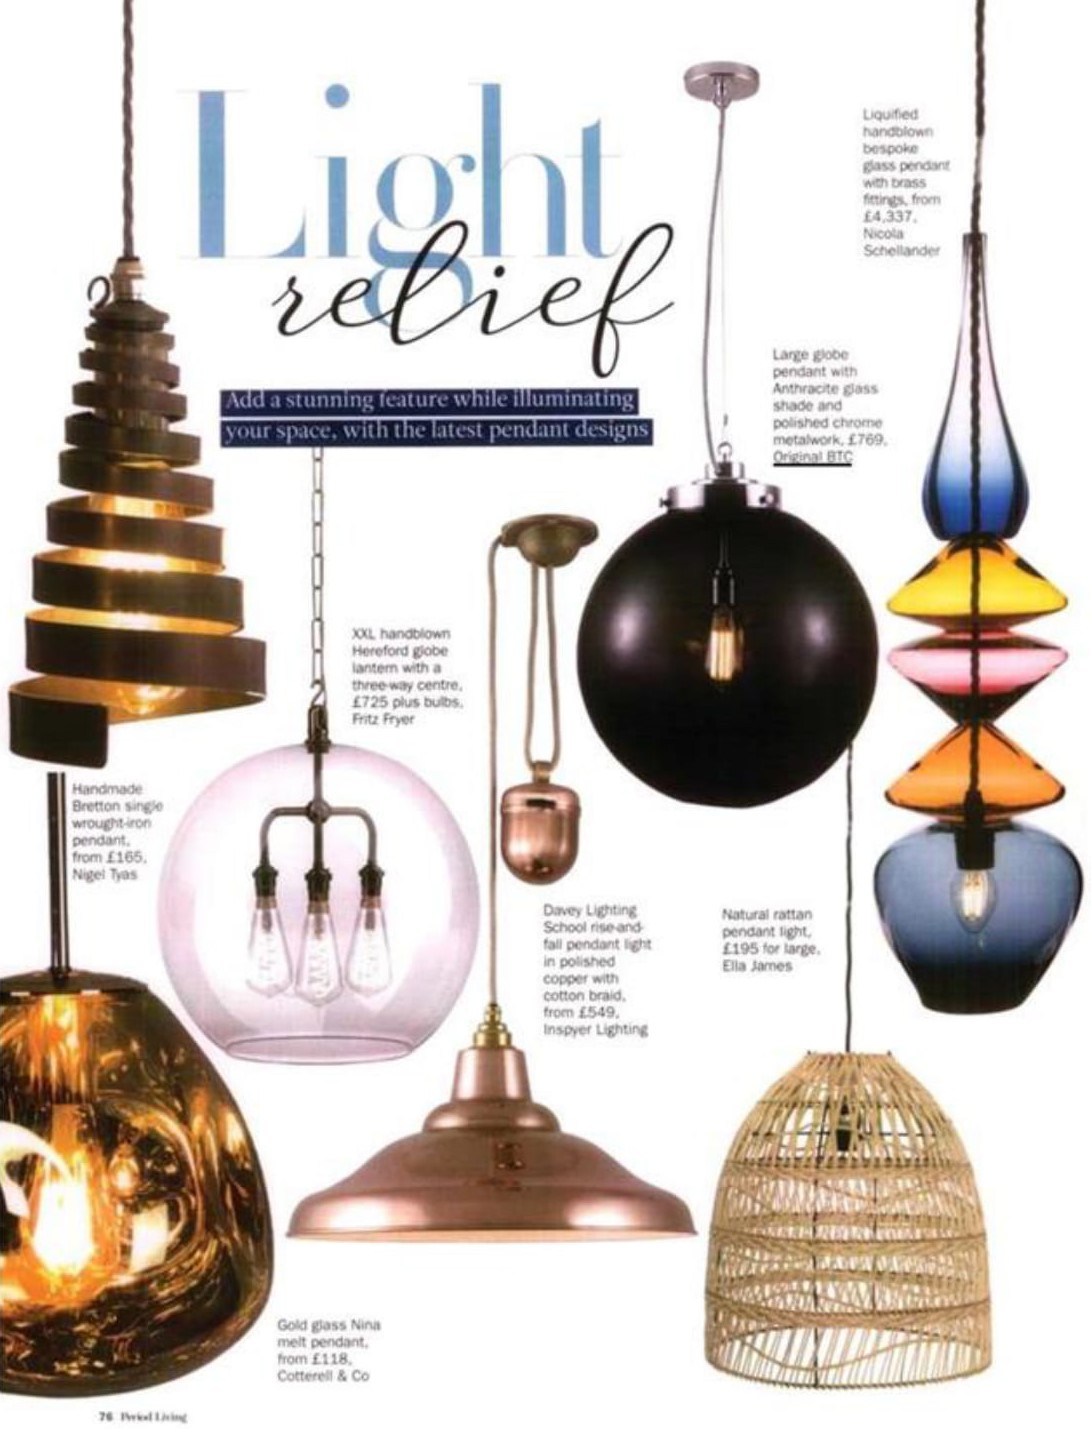 Original BTC's Globe and Davey Lighting's School pendants are joined by...